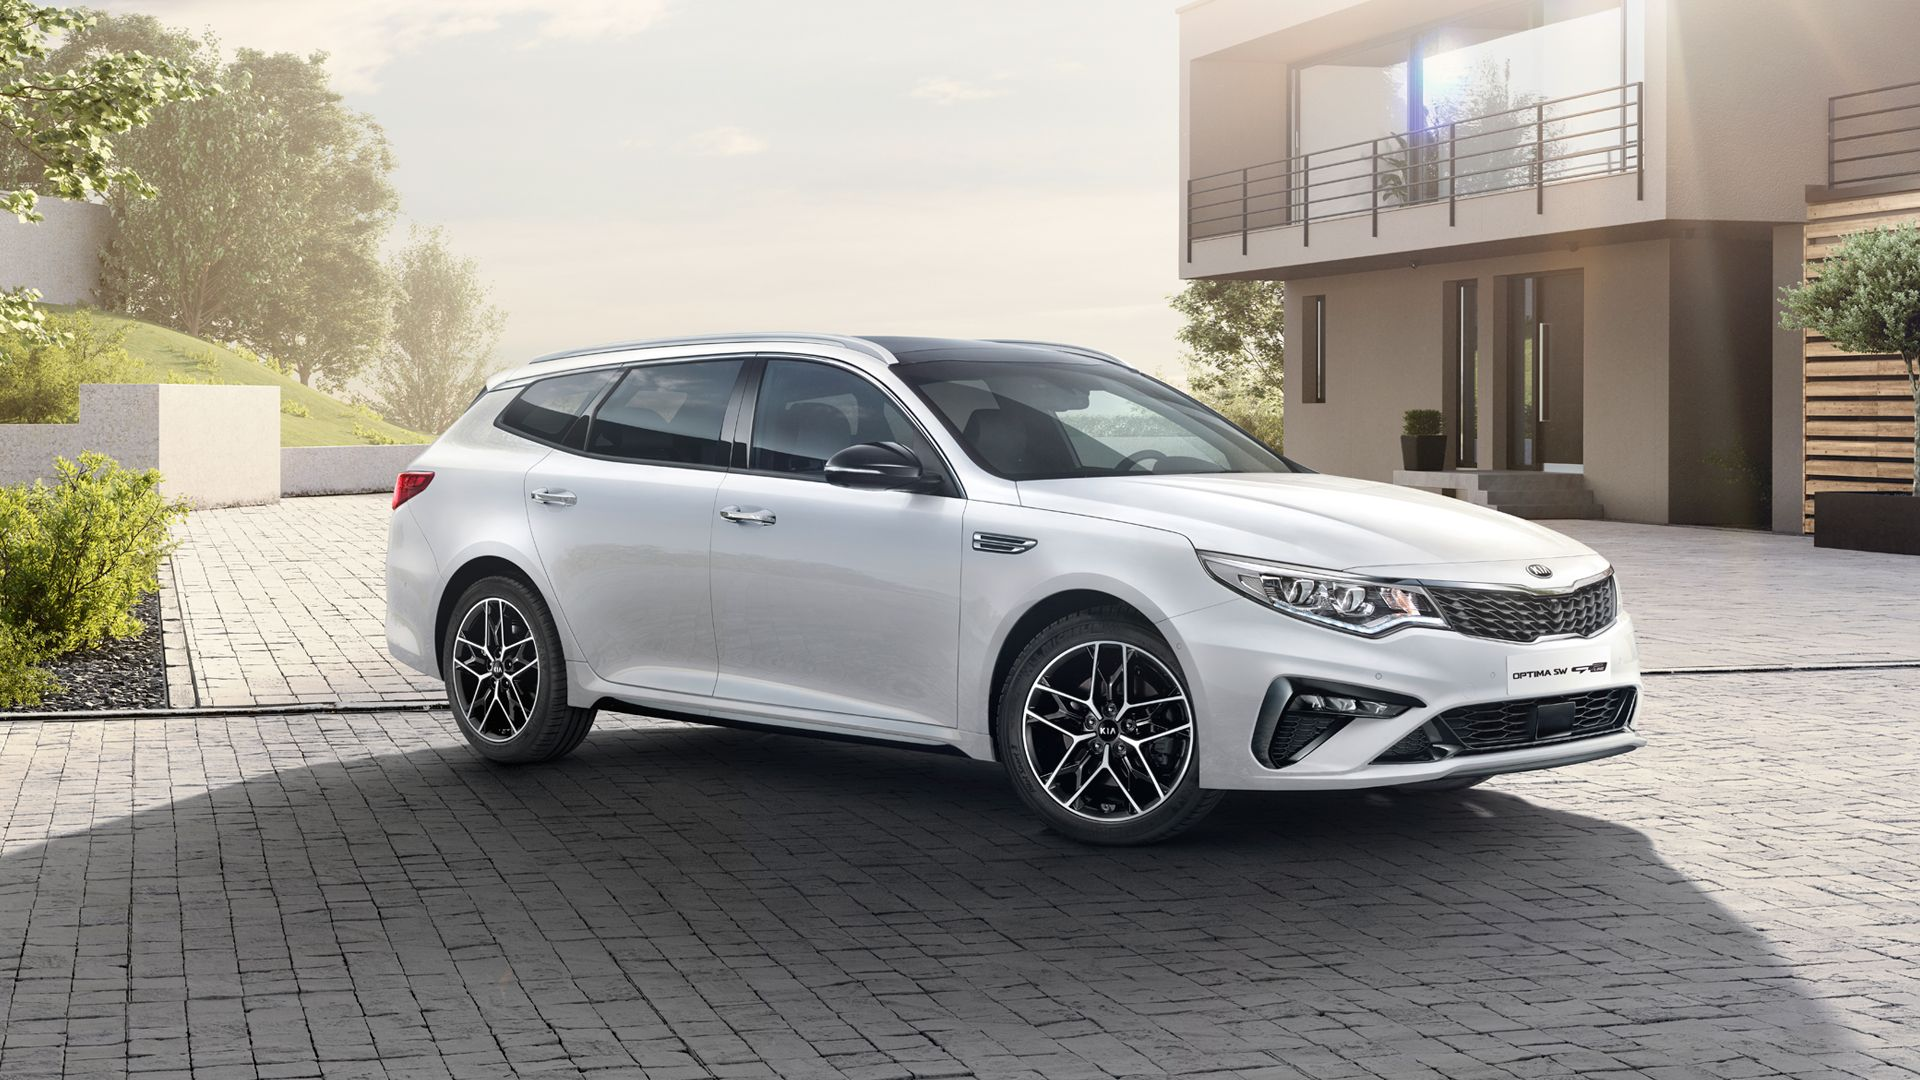 Kia Gives The Optima Sportswagon A Revitalizing New Look And Fresh Power For The Geneva Motor Show Top Speed Kia Optima Kia Geneva Motor Show